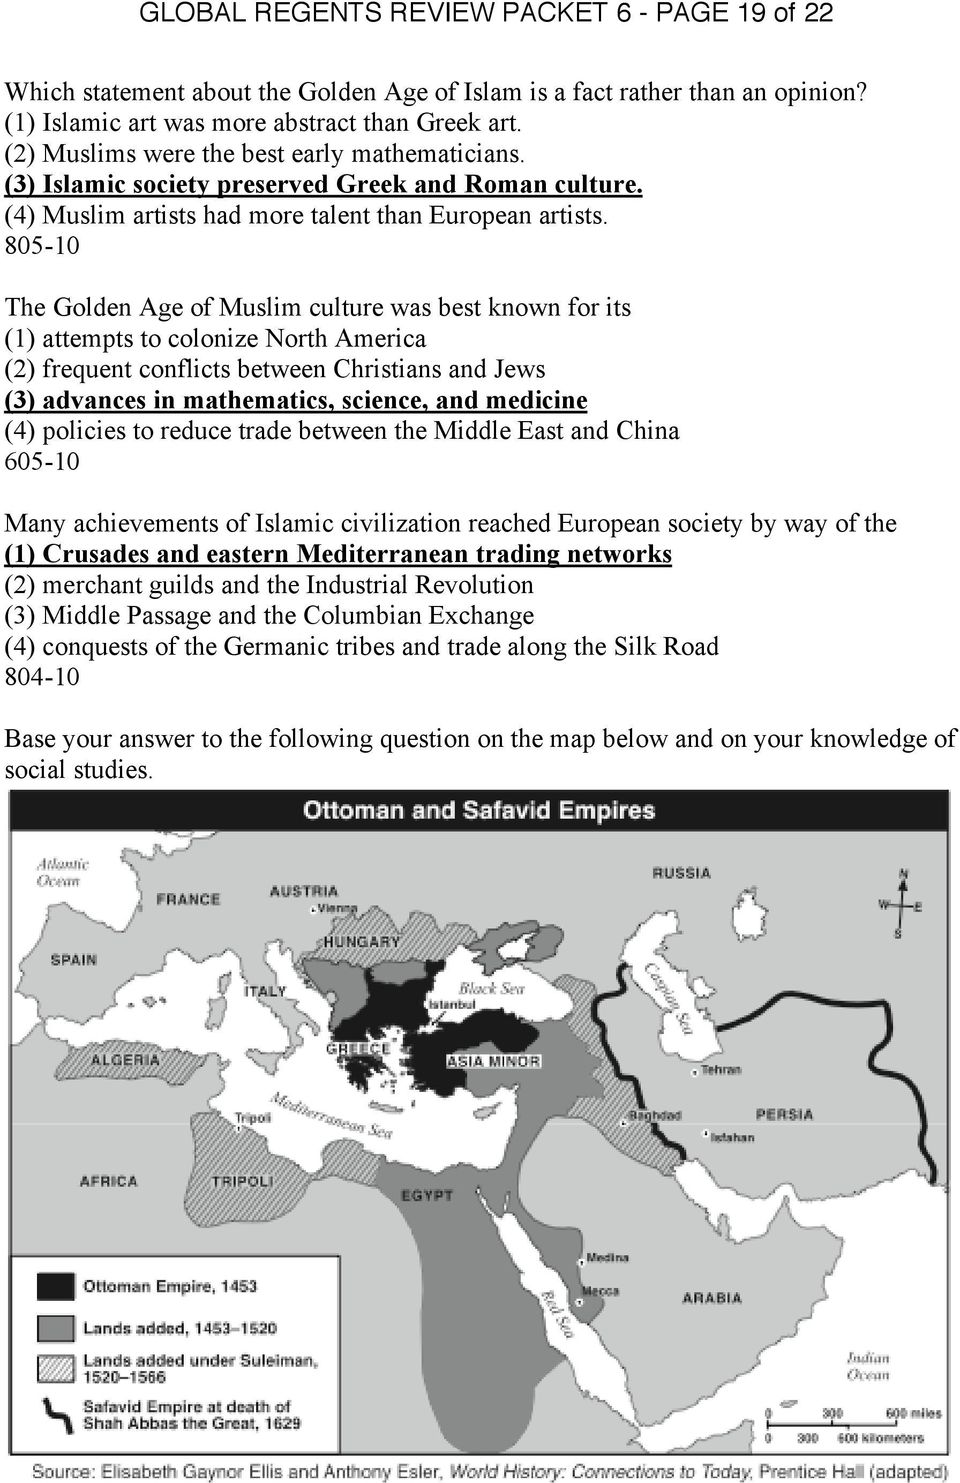 805-10 The Golden Age of Muslim culture was best known for its (1) attempts to colonize North America (2) frequent conflicts between Christians and Jews (3) advances in mathematics, science, and